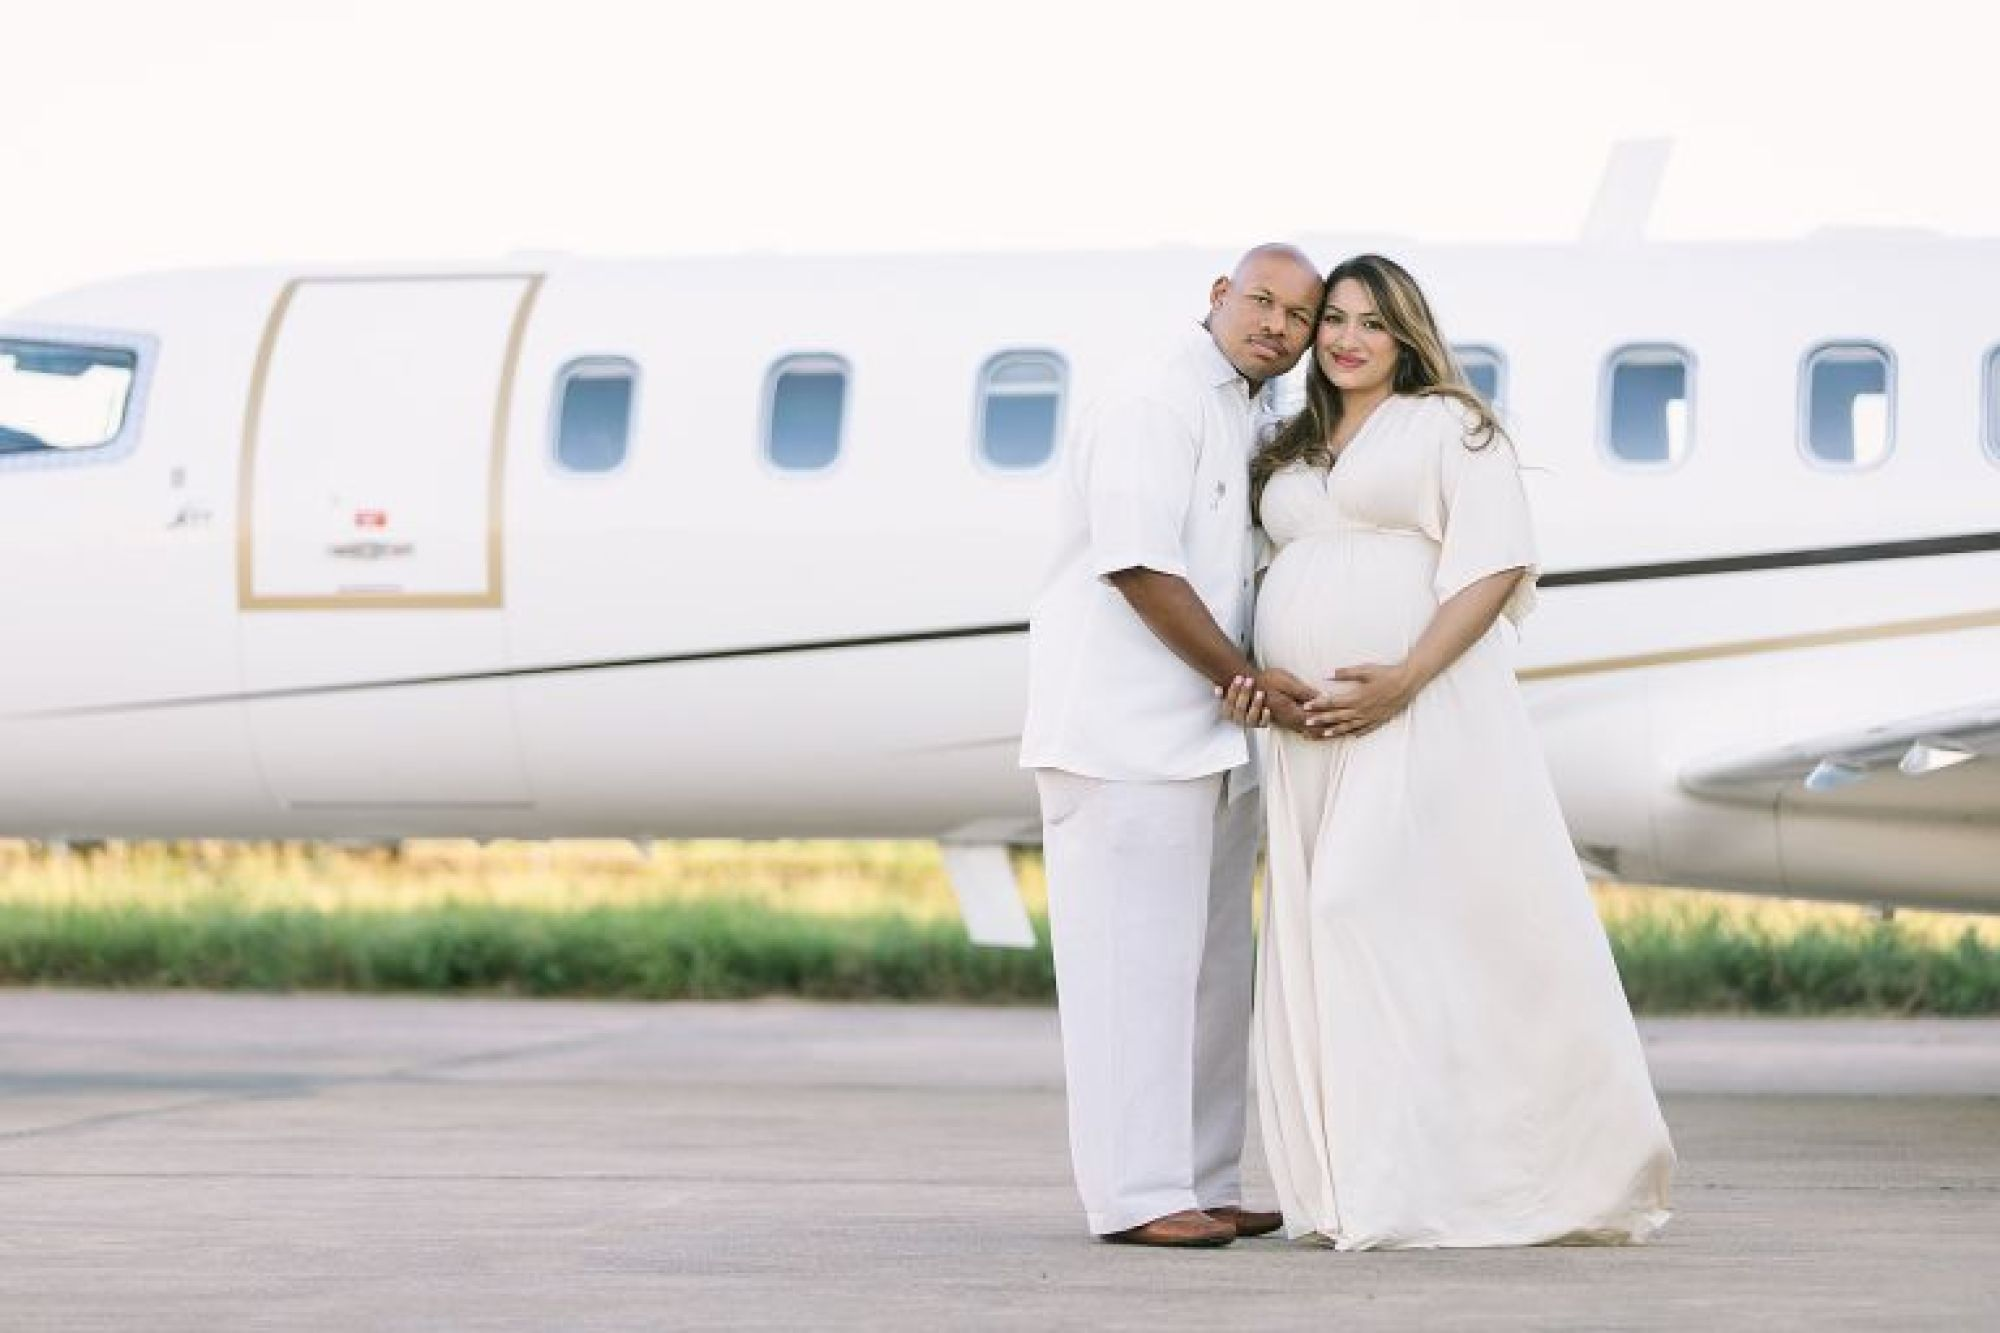 Maternity photoshoot at airport in Memorial City, TX. Photos by Courtney Griffin Photography.